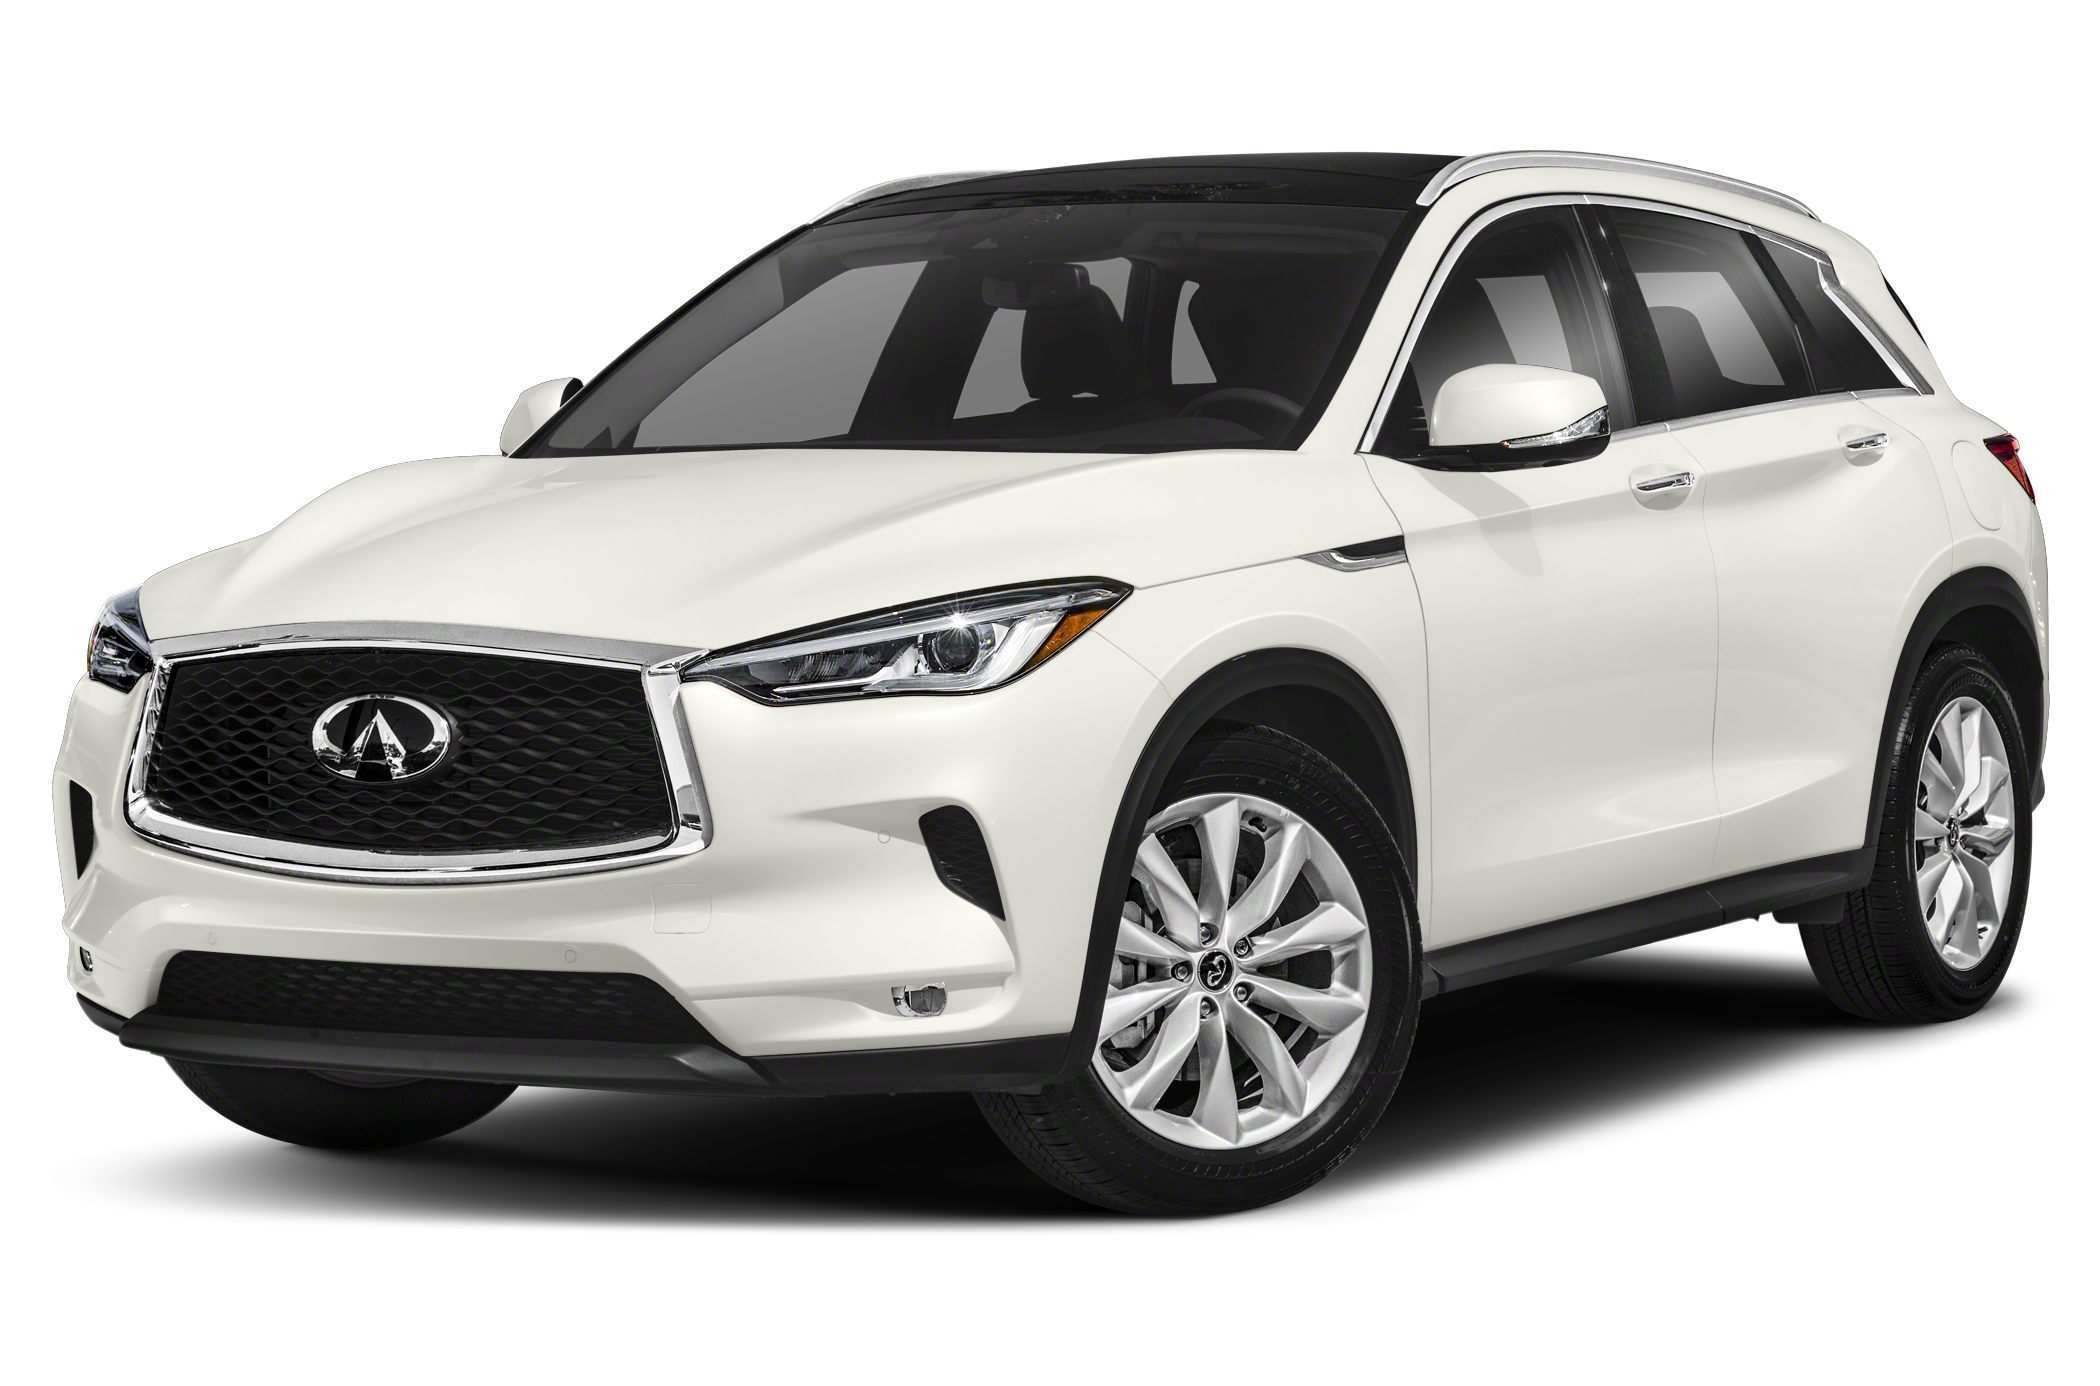 21 The Best 2019 Infiniti Qx50 Luxe Interior Interior